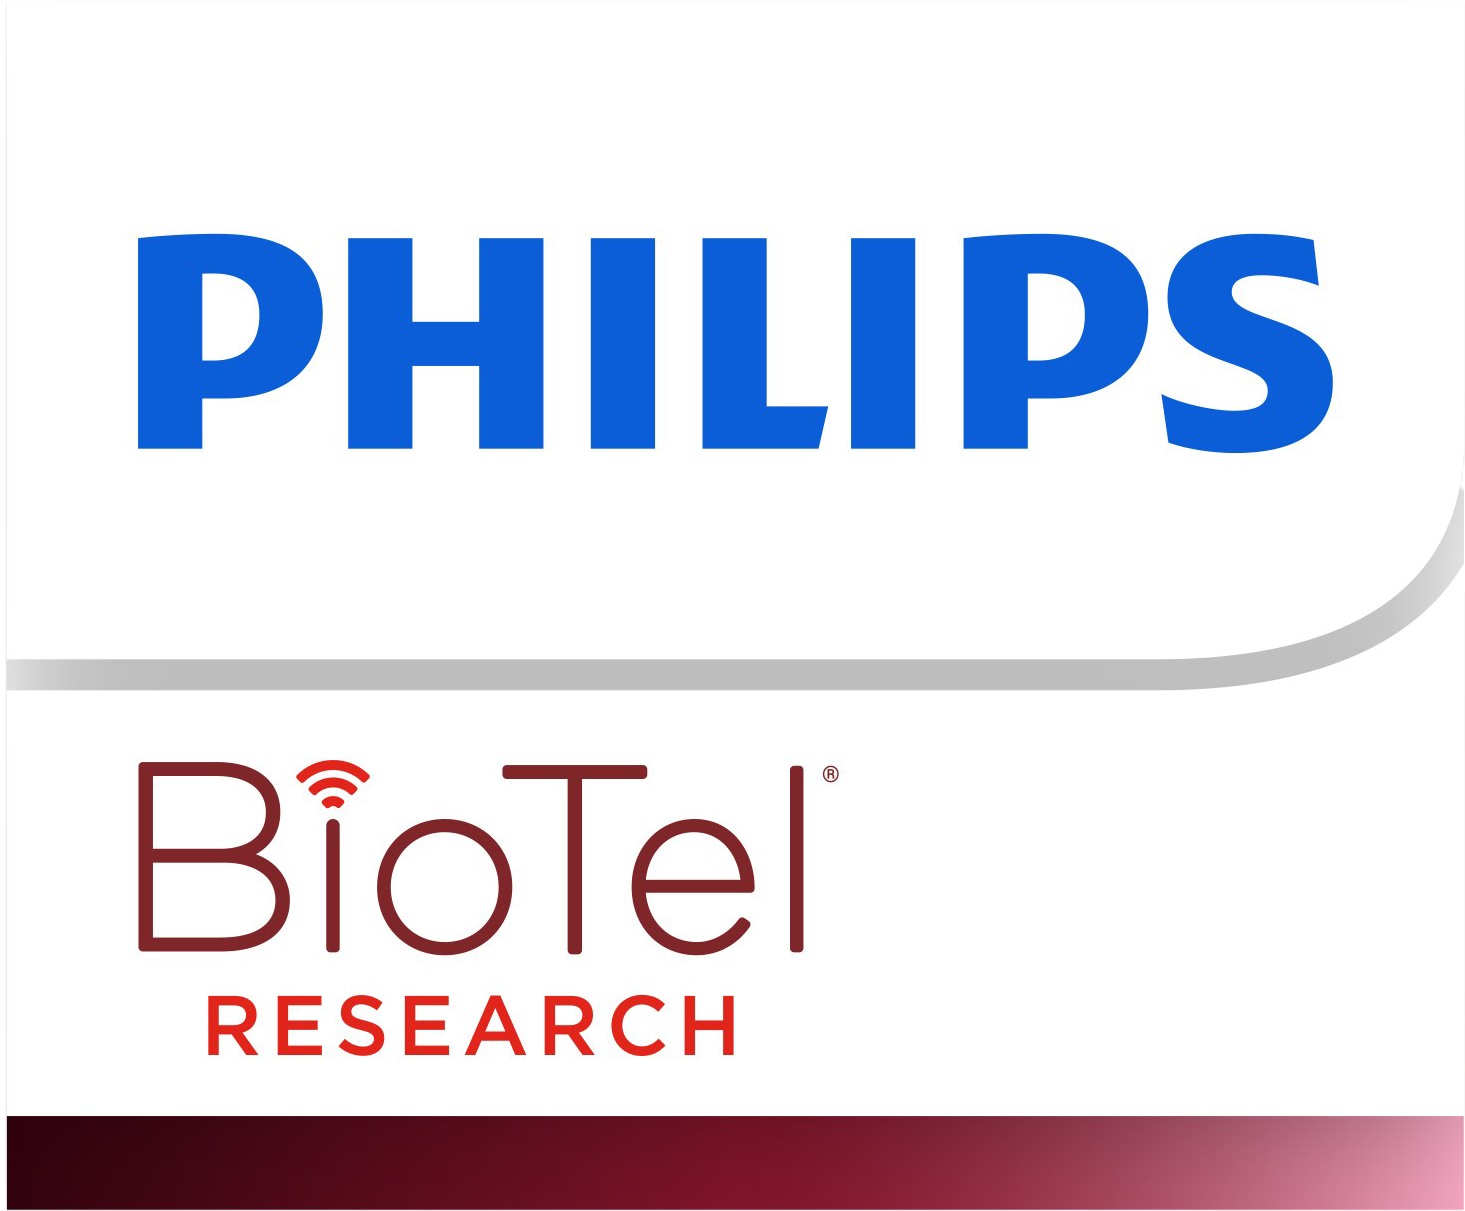 Philips BioTel Research